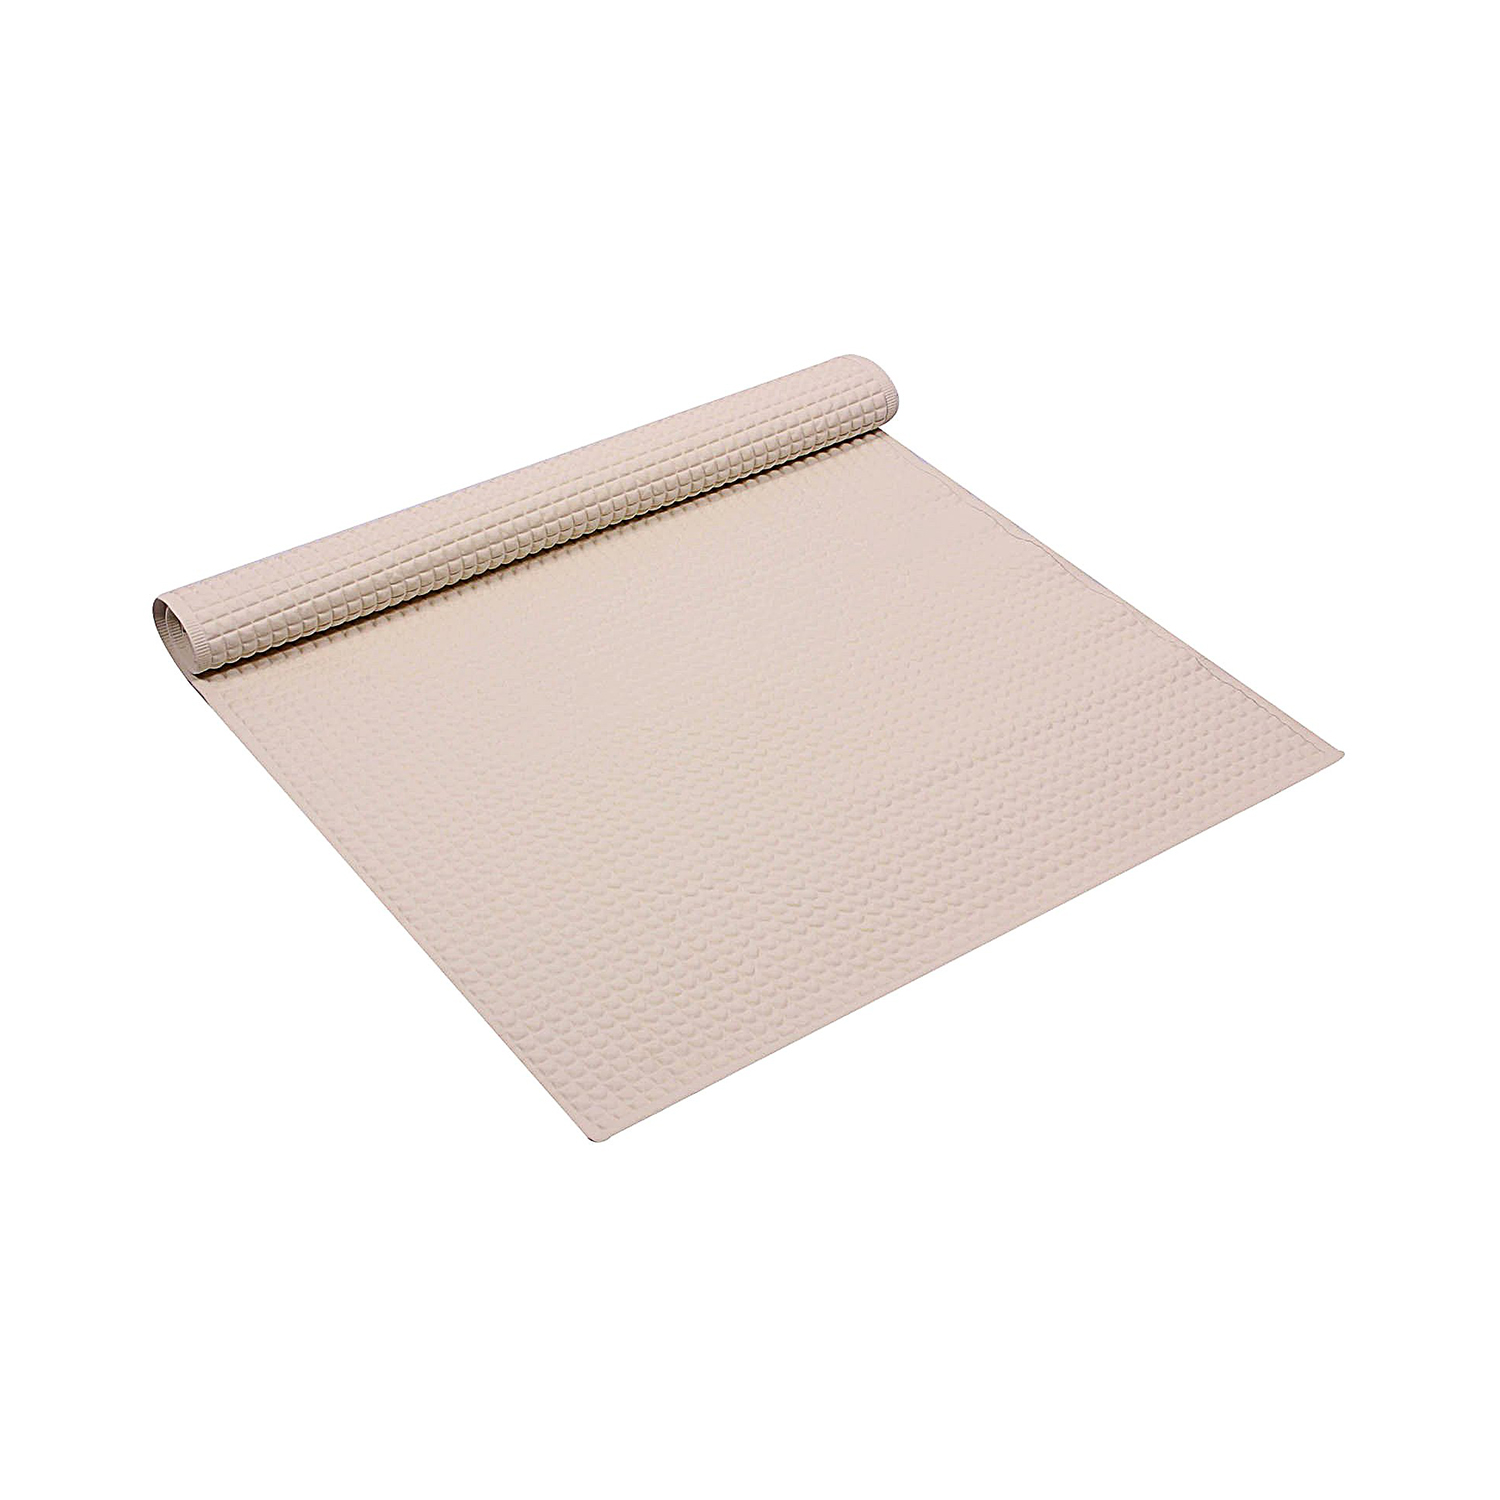 Nuk 1036462 Air Fill Rubber Cot Sheet